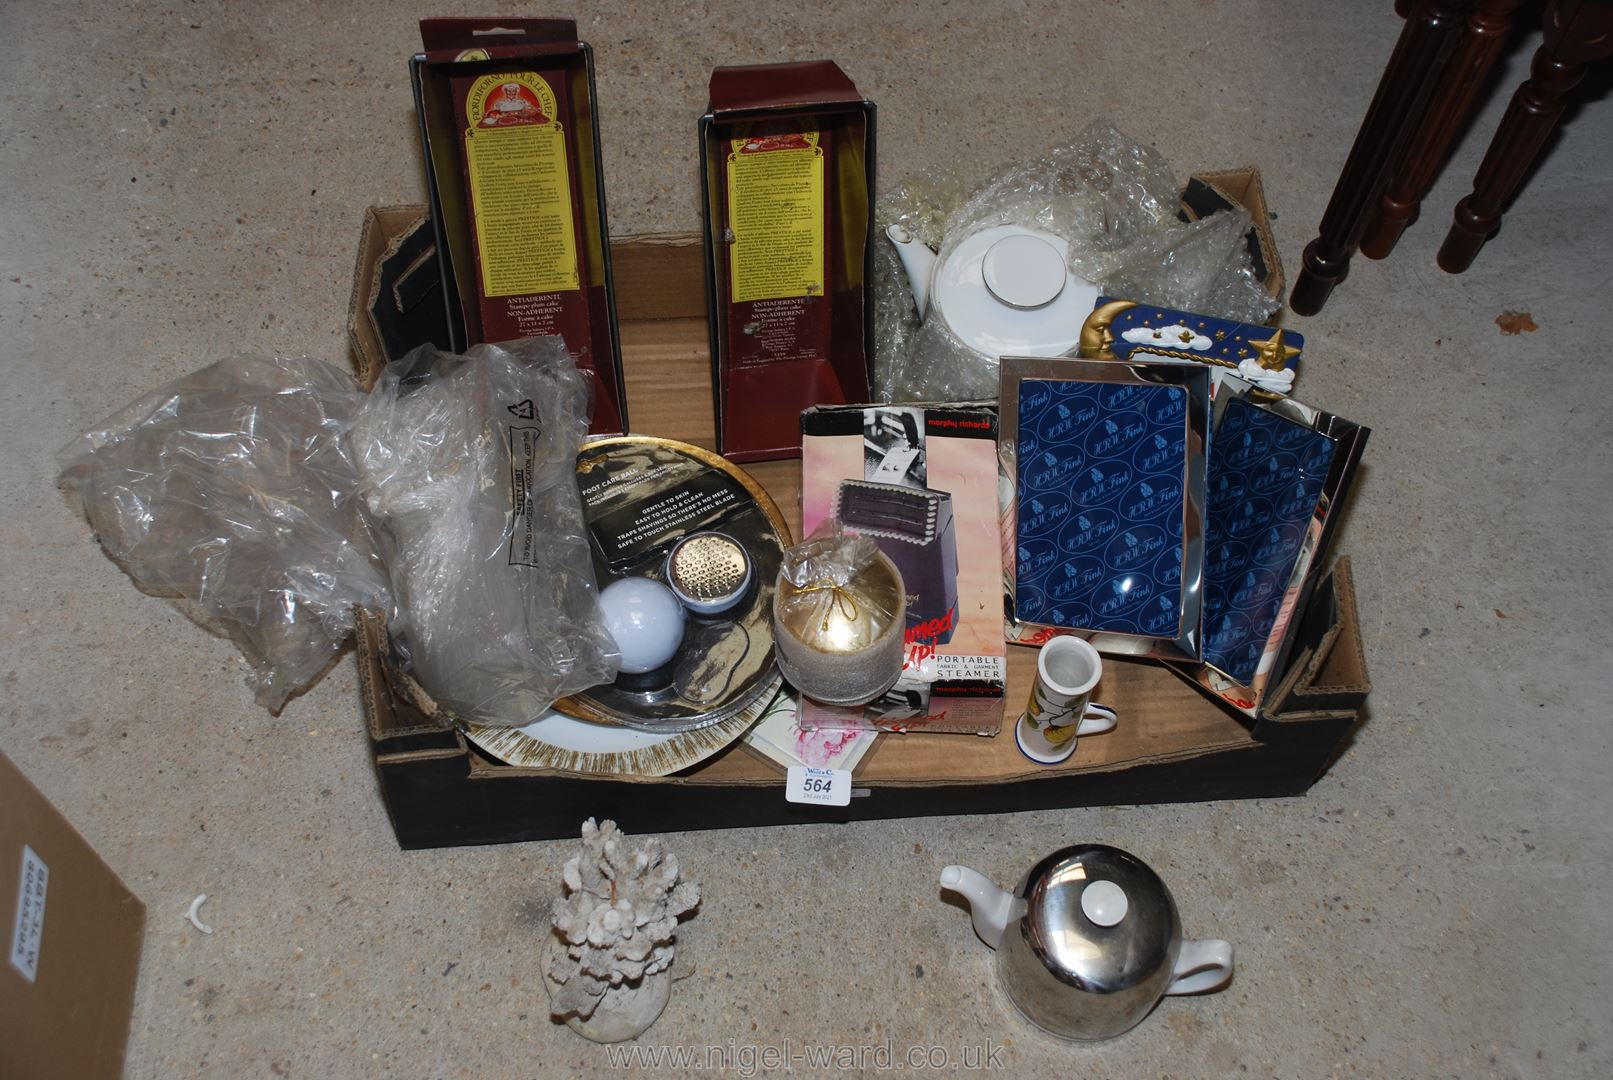 Box of miscellanea including loaf tins, coral,